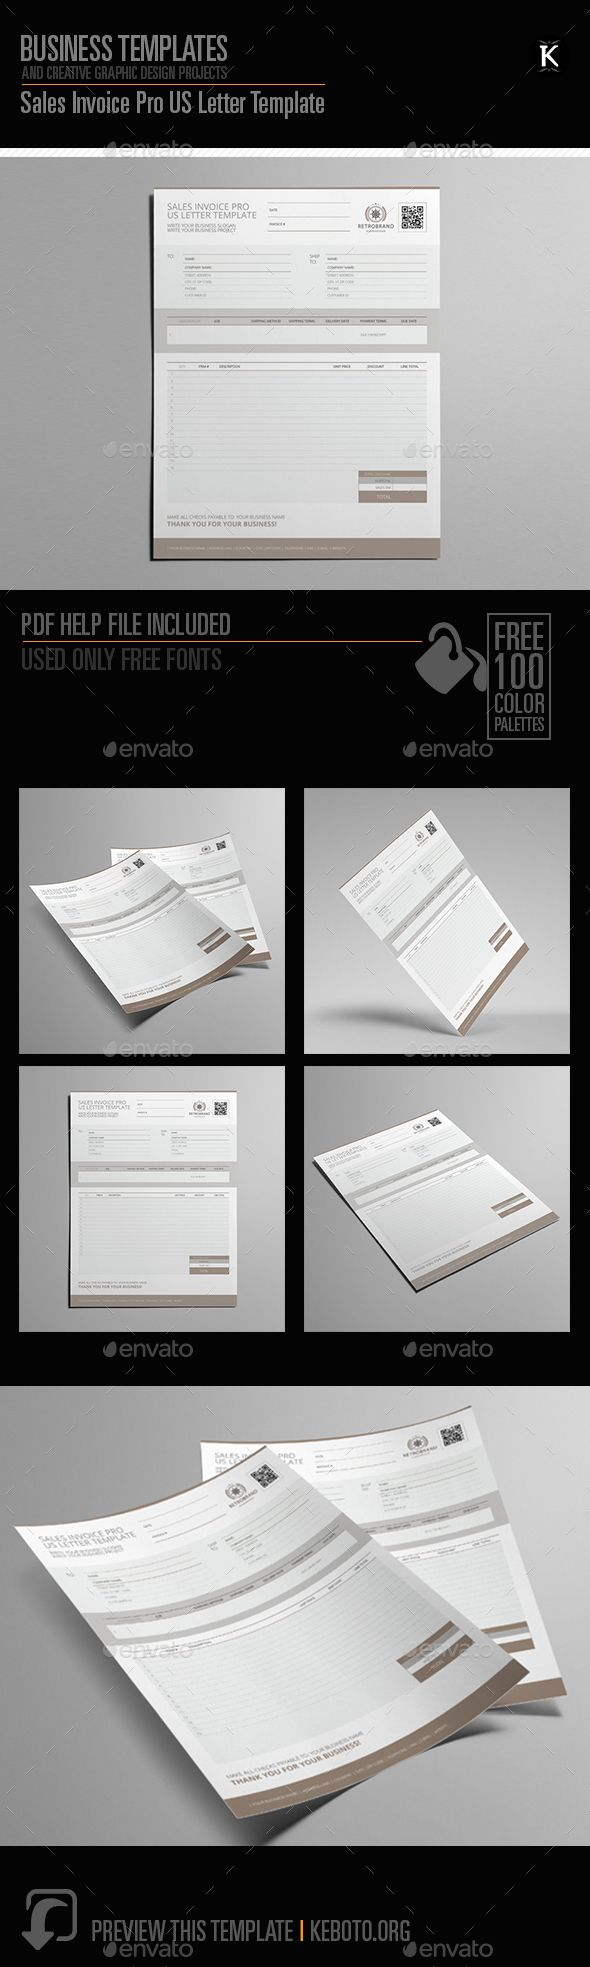 free proposal template%0A Sales Invoice Pro US Letter Template